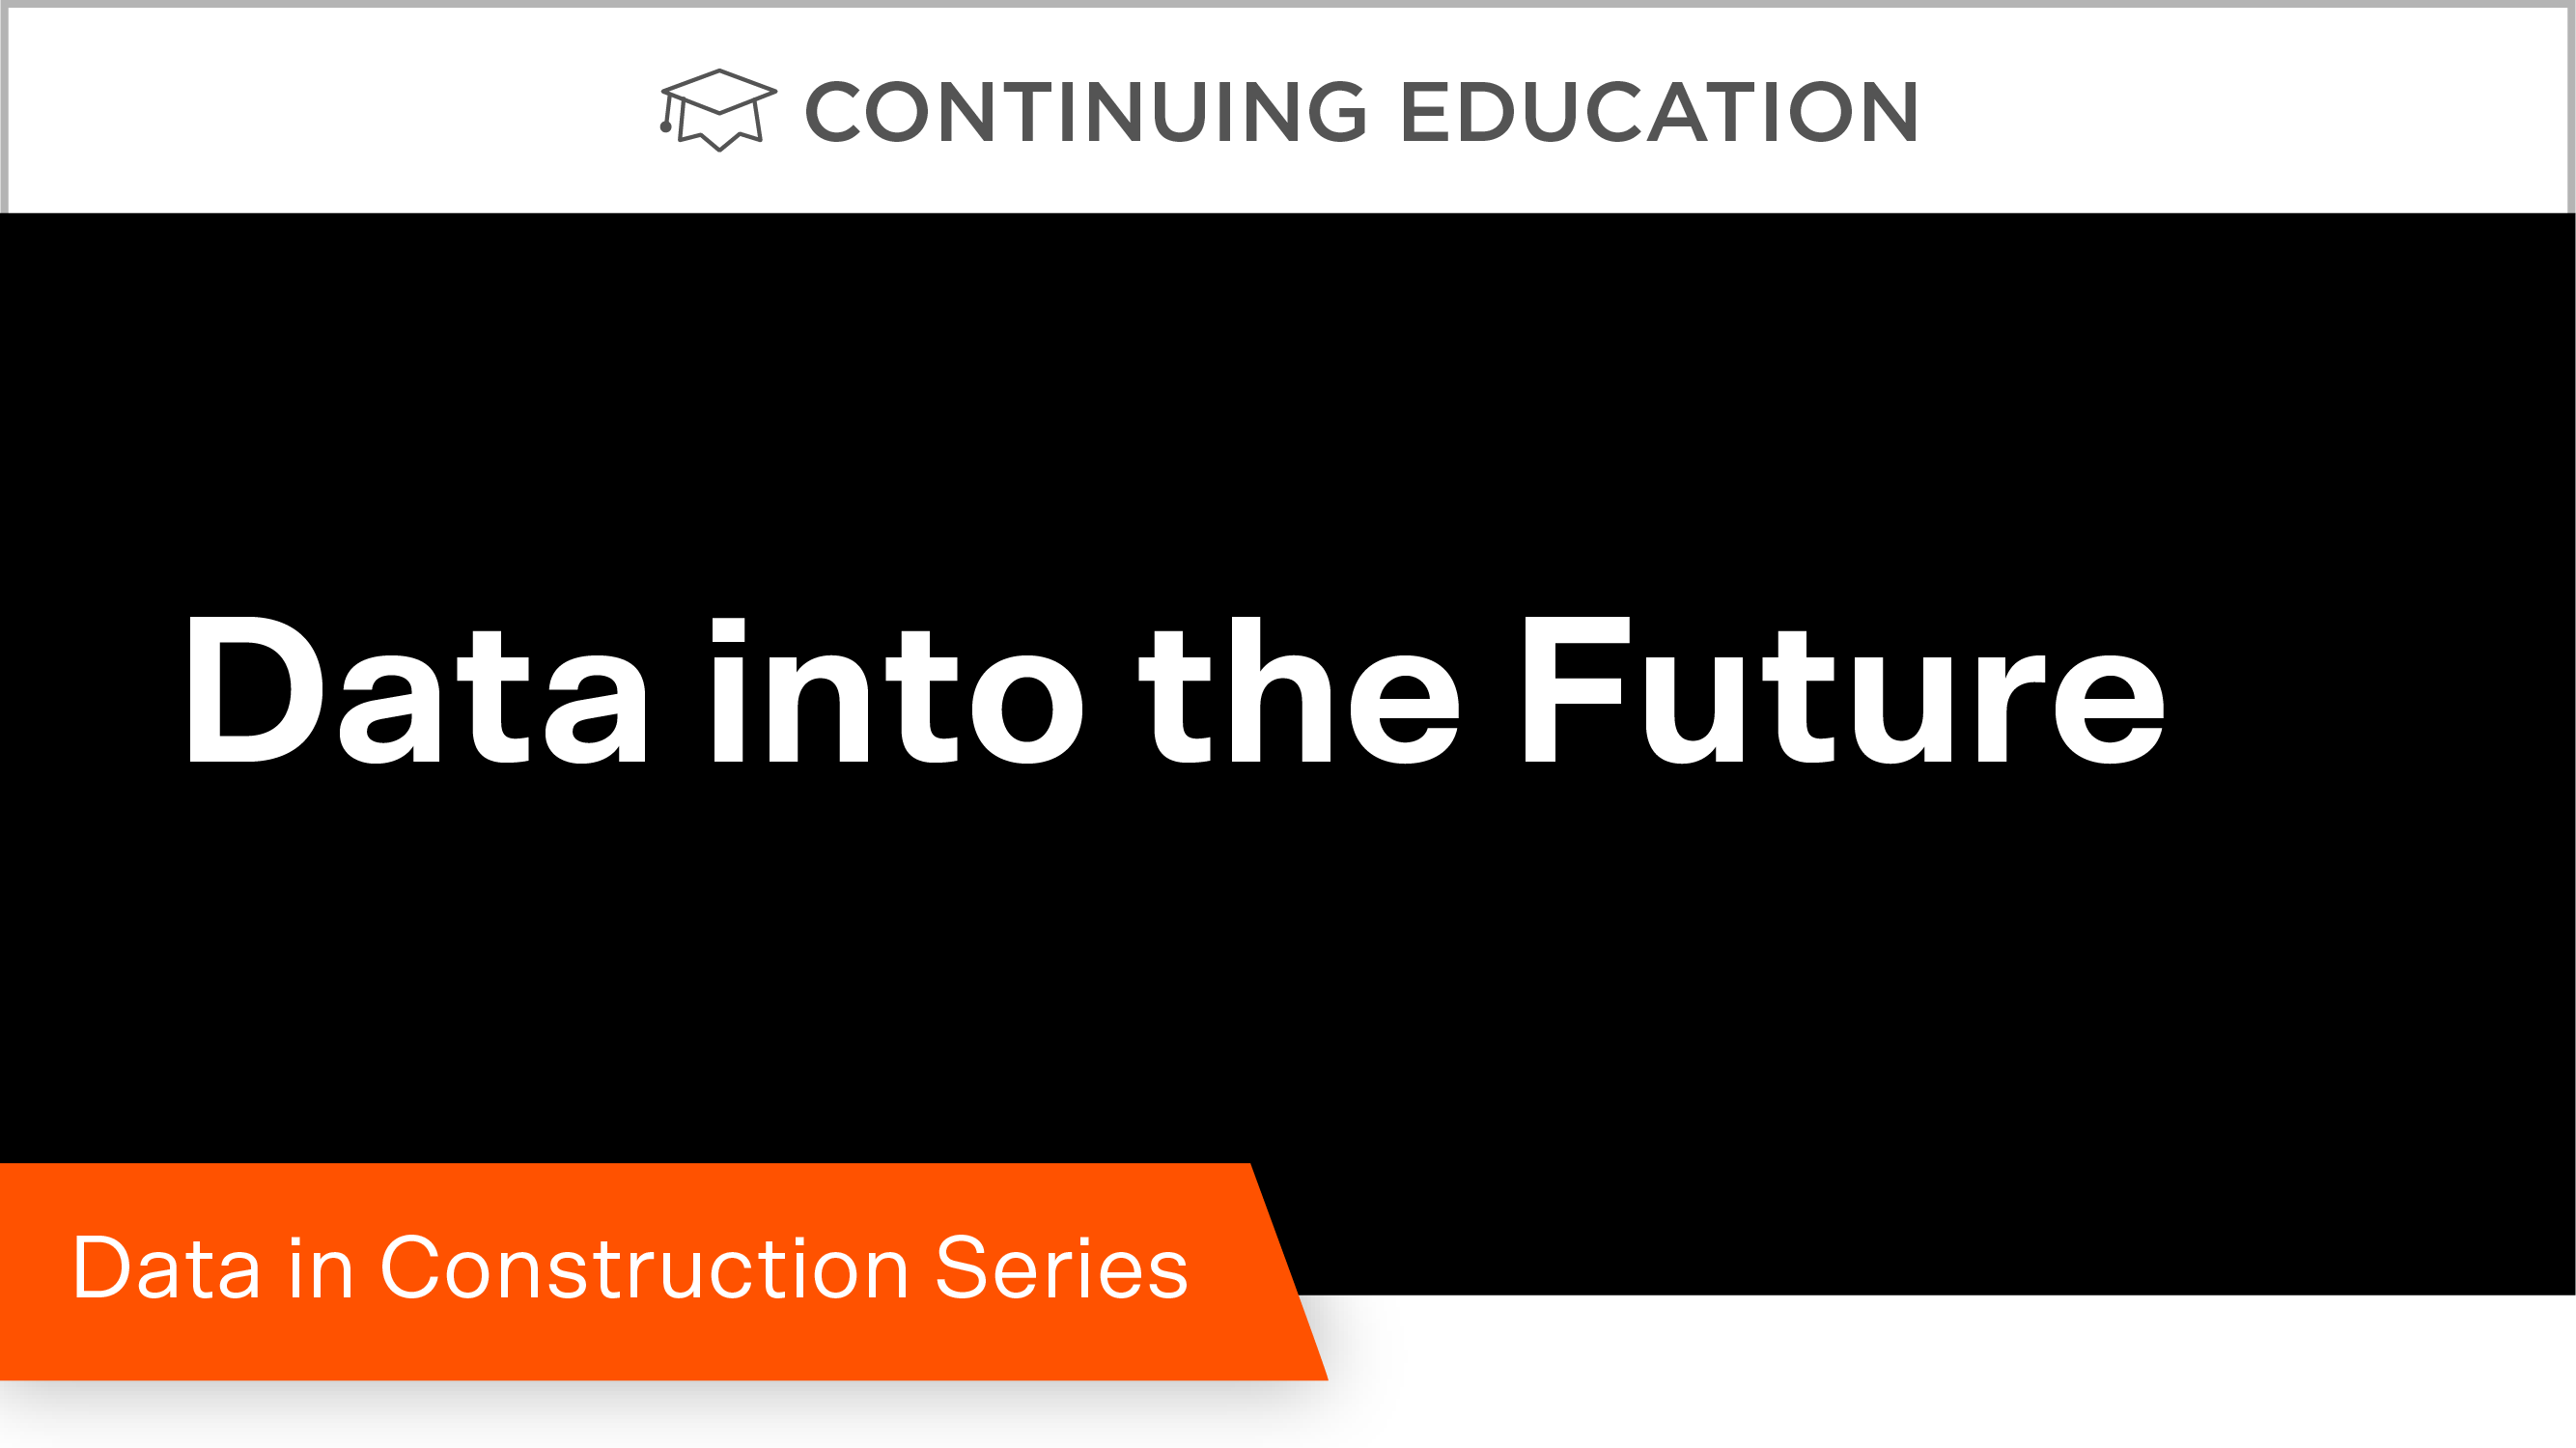 Data in Construction Part 5: Data into the Future